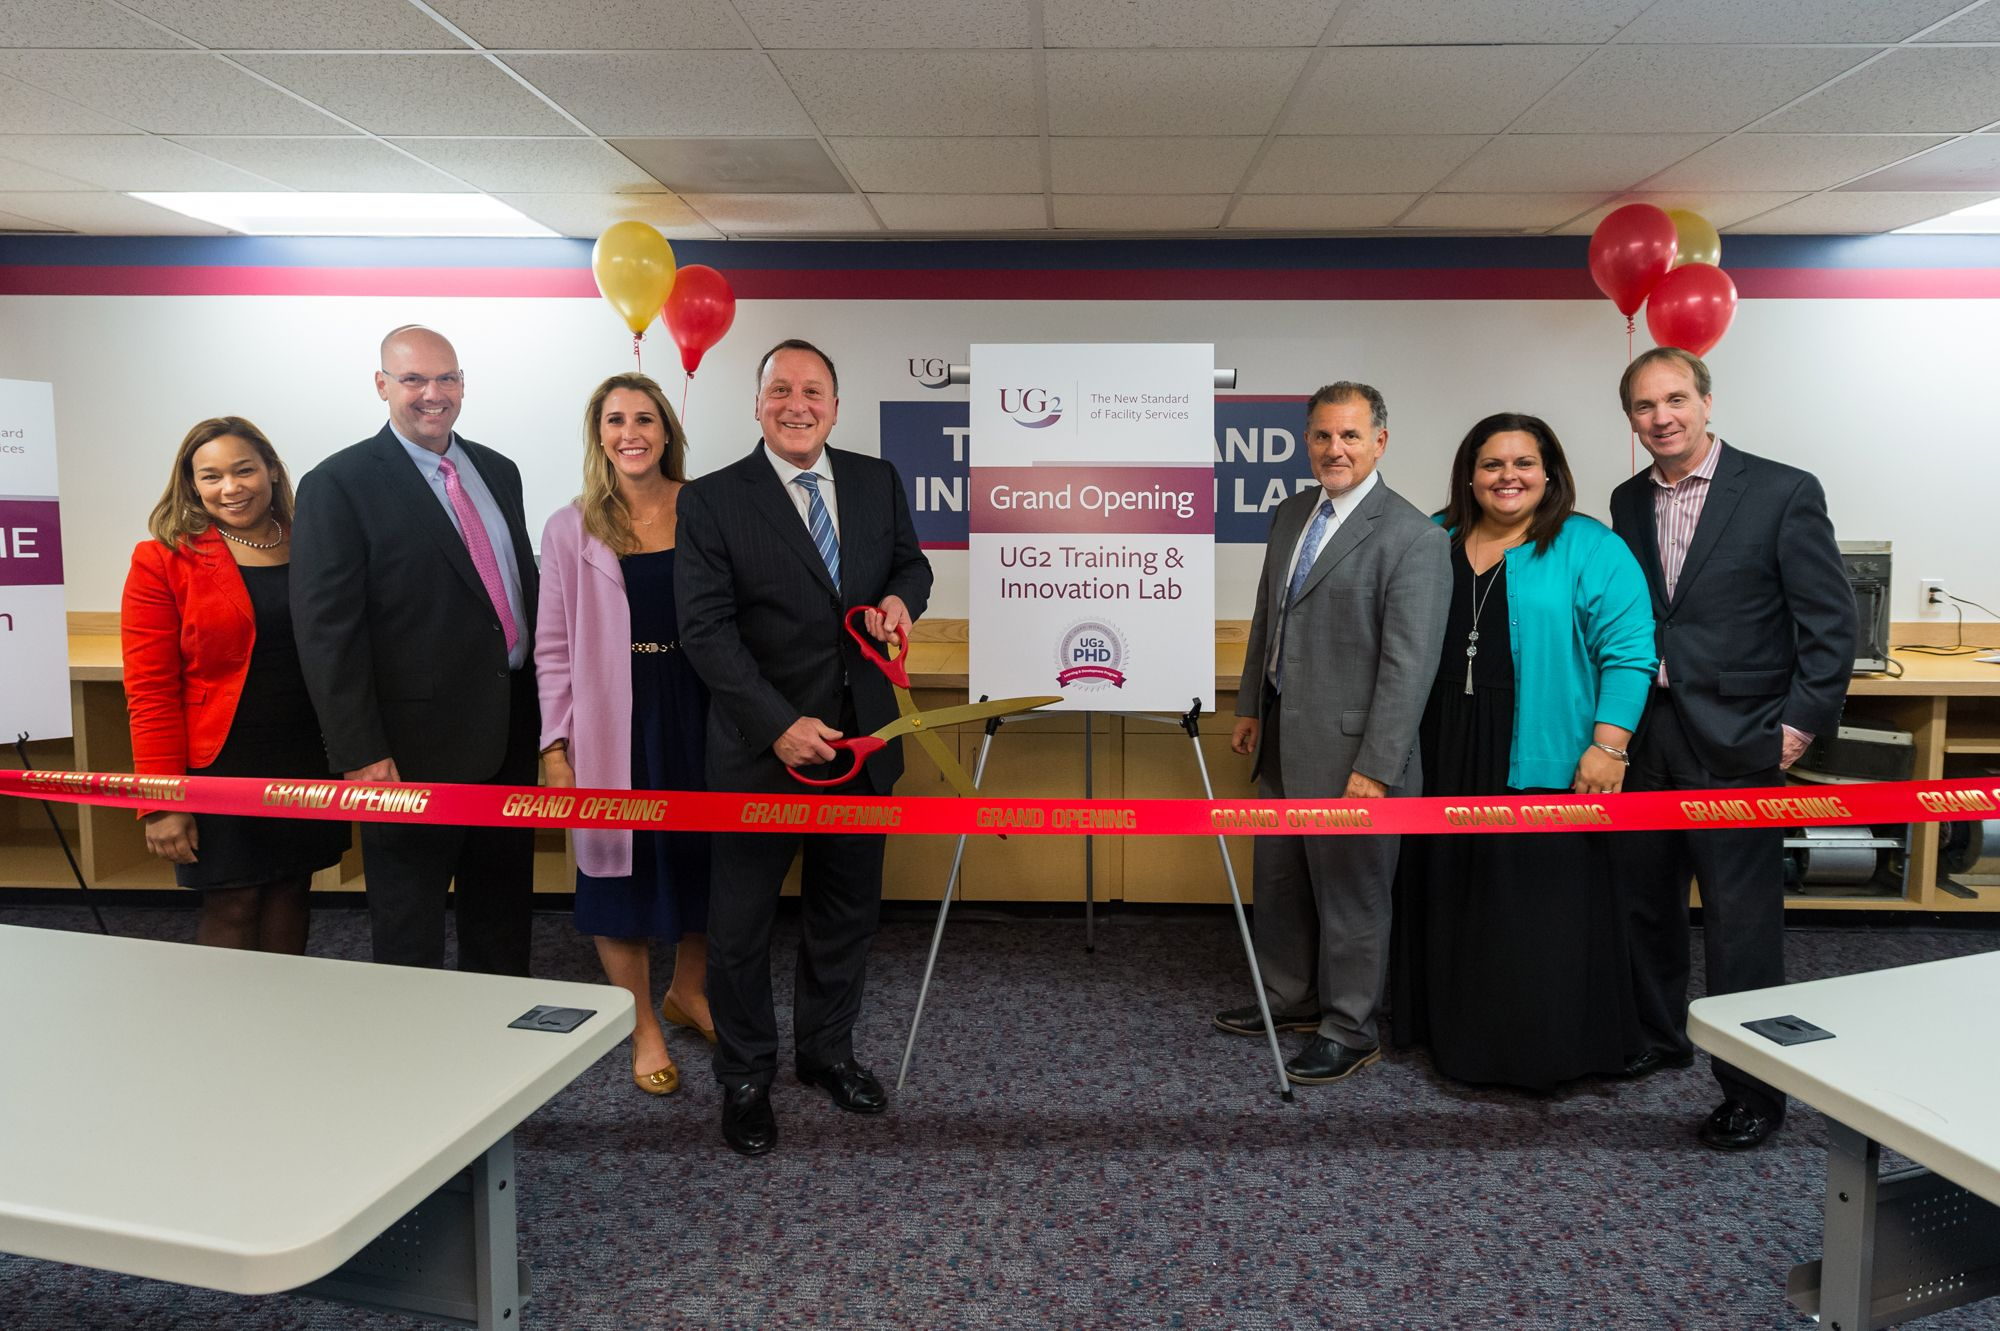 UG2 Senior Leadership cuts the ribbon at its new Innovation & Training Lab